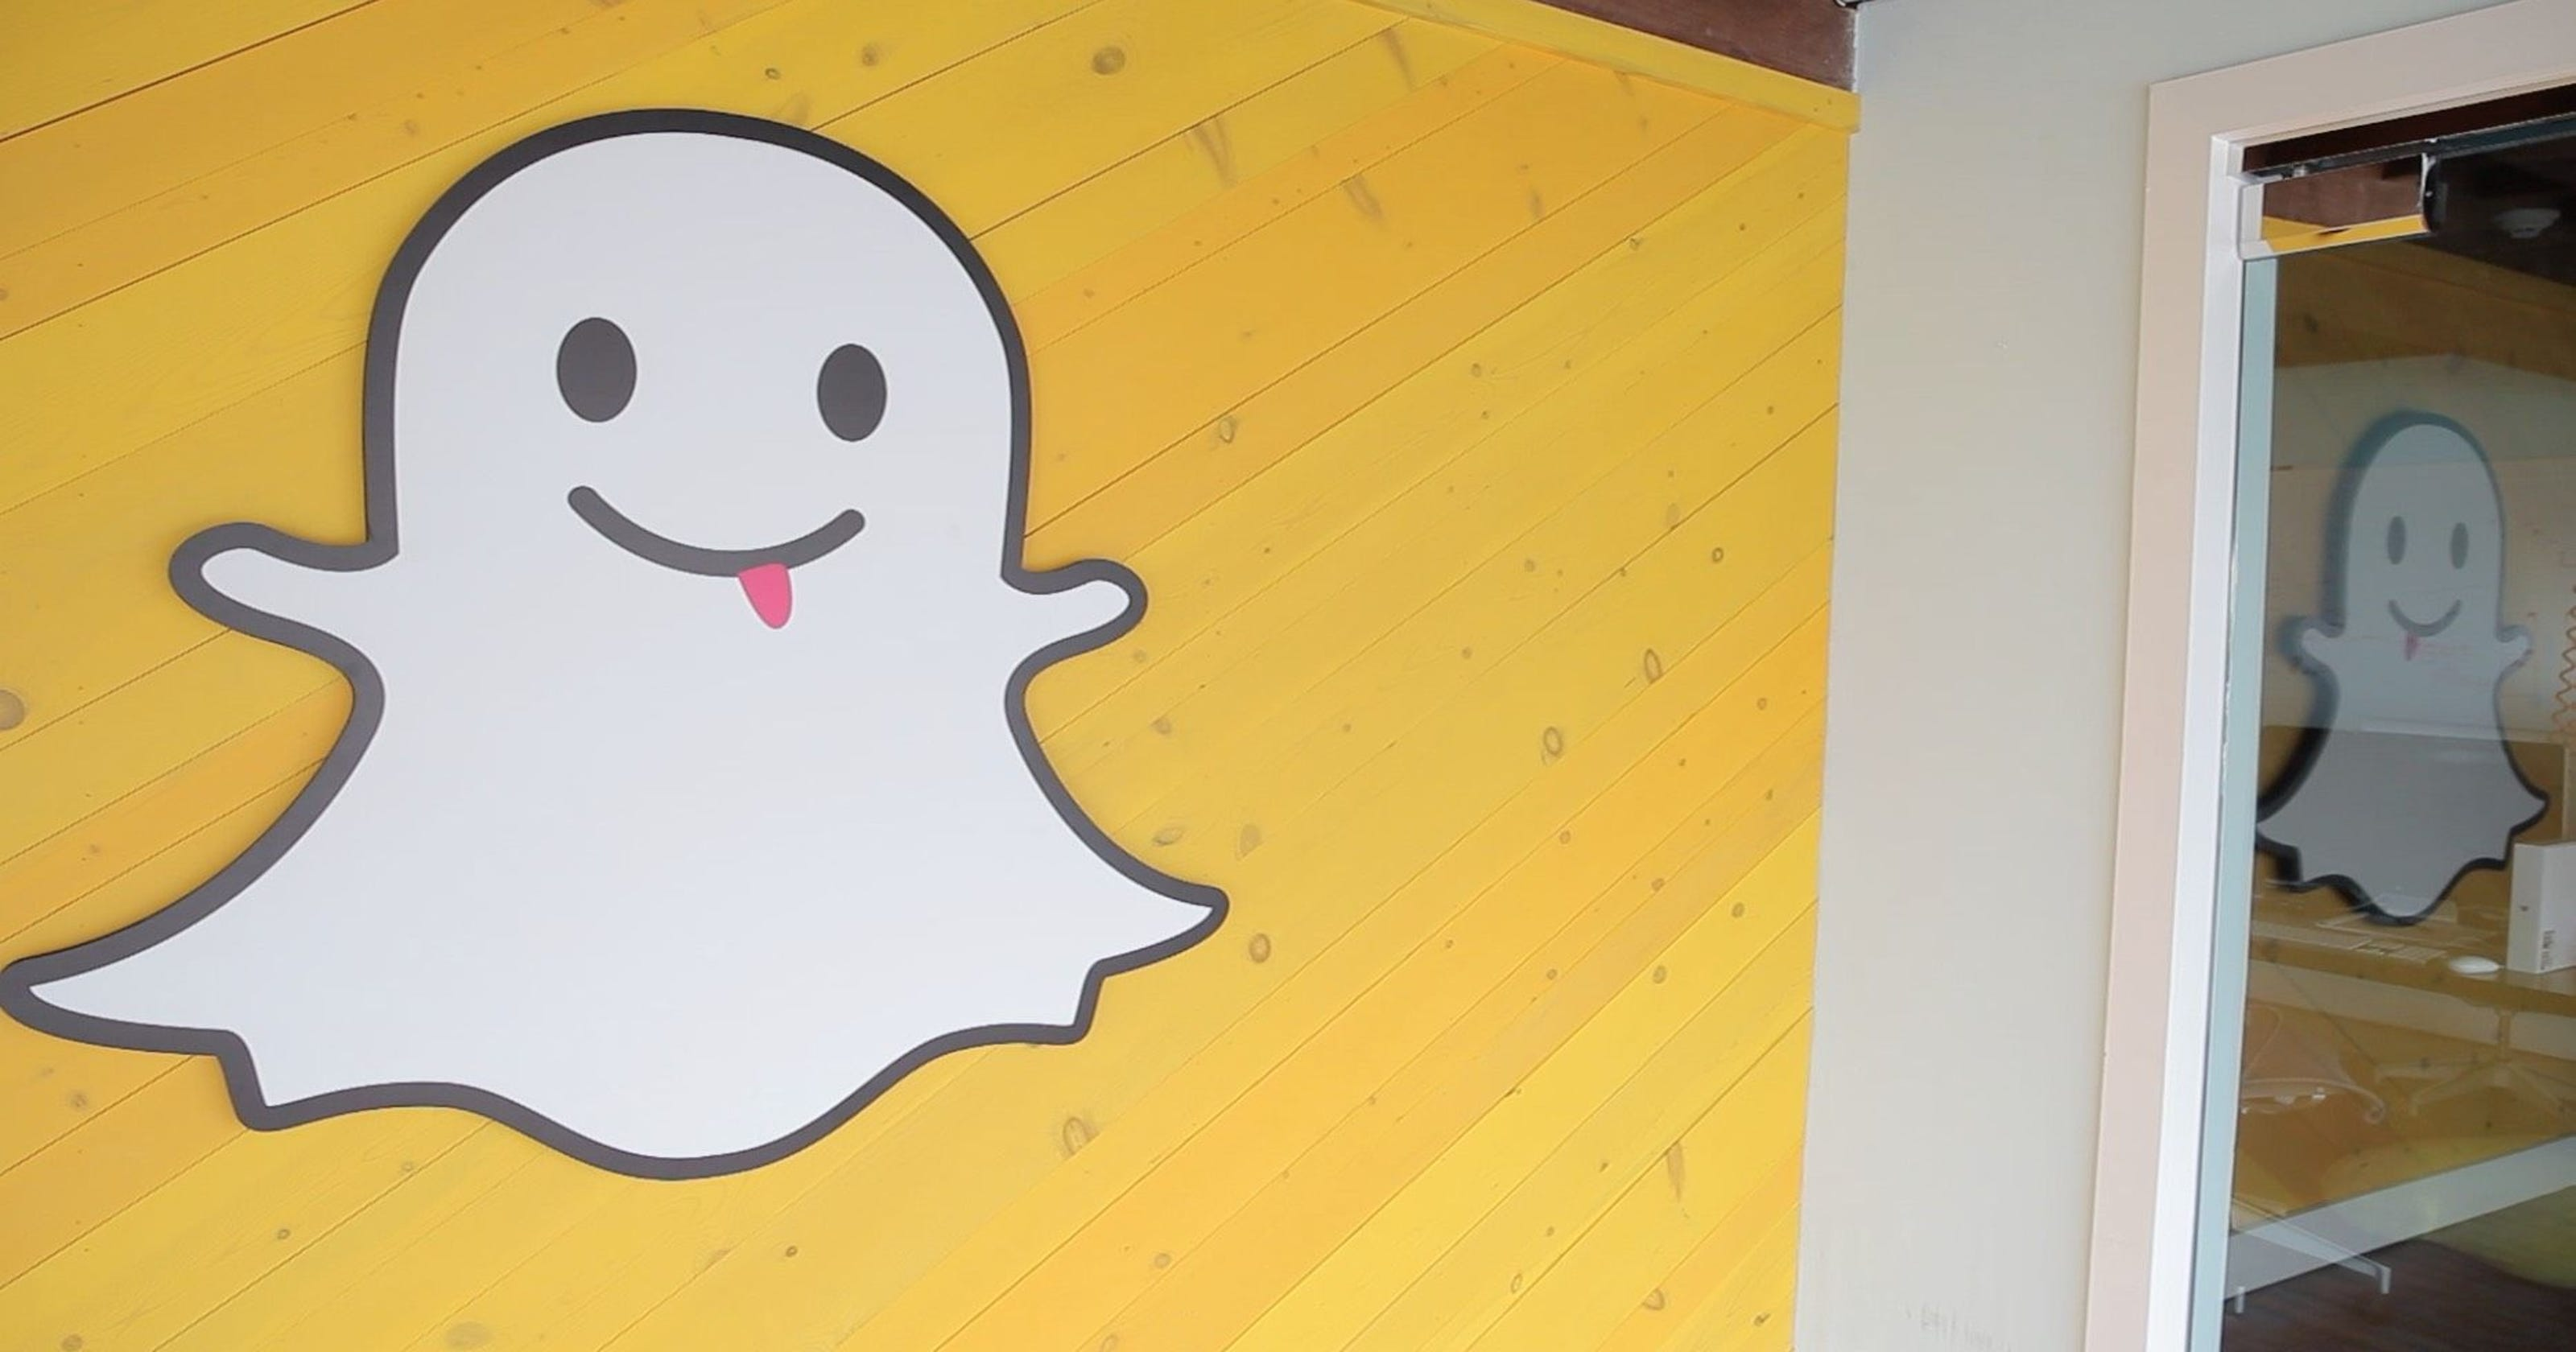 What Snap needs to do to maintain its edge